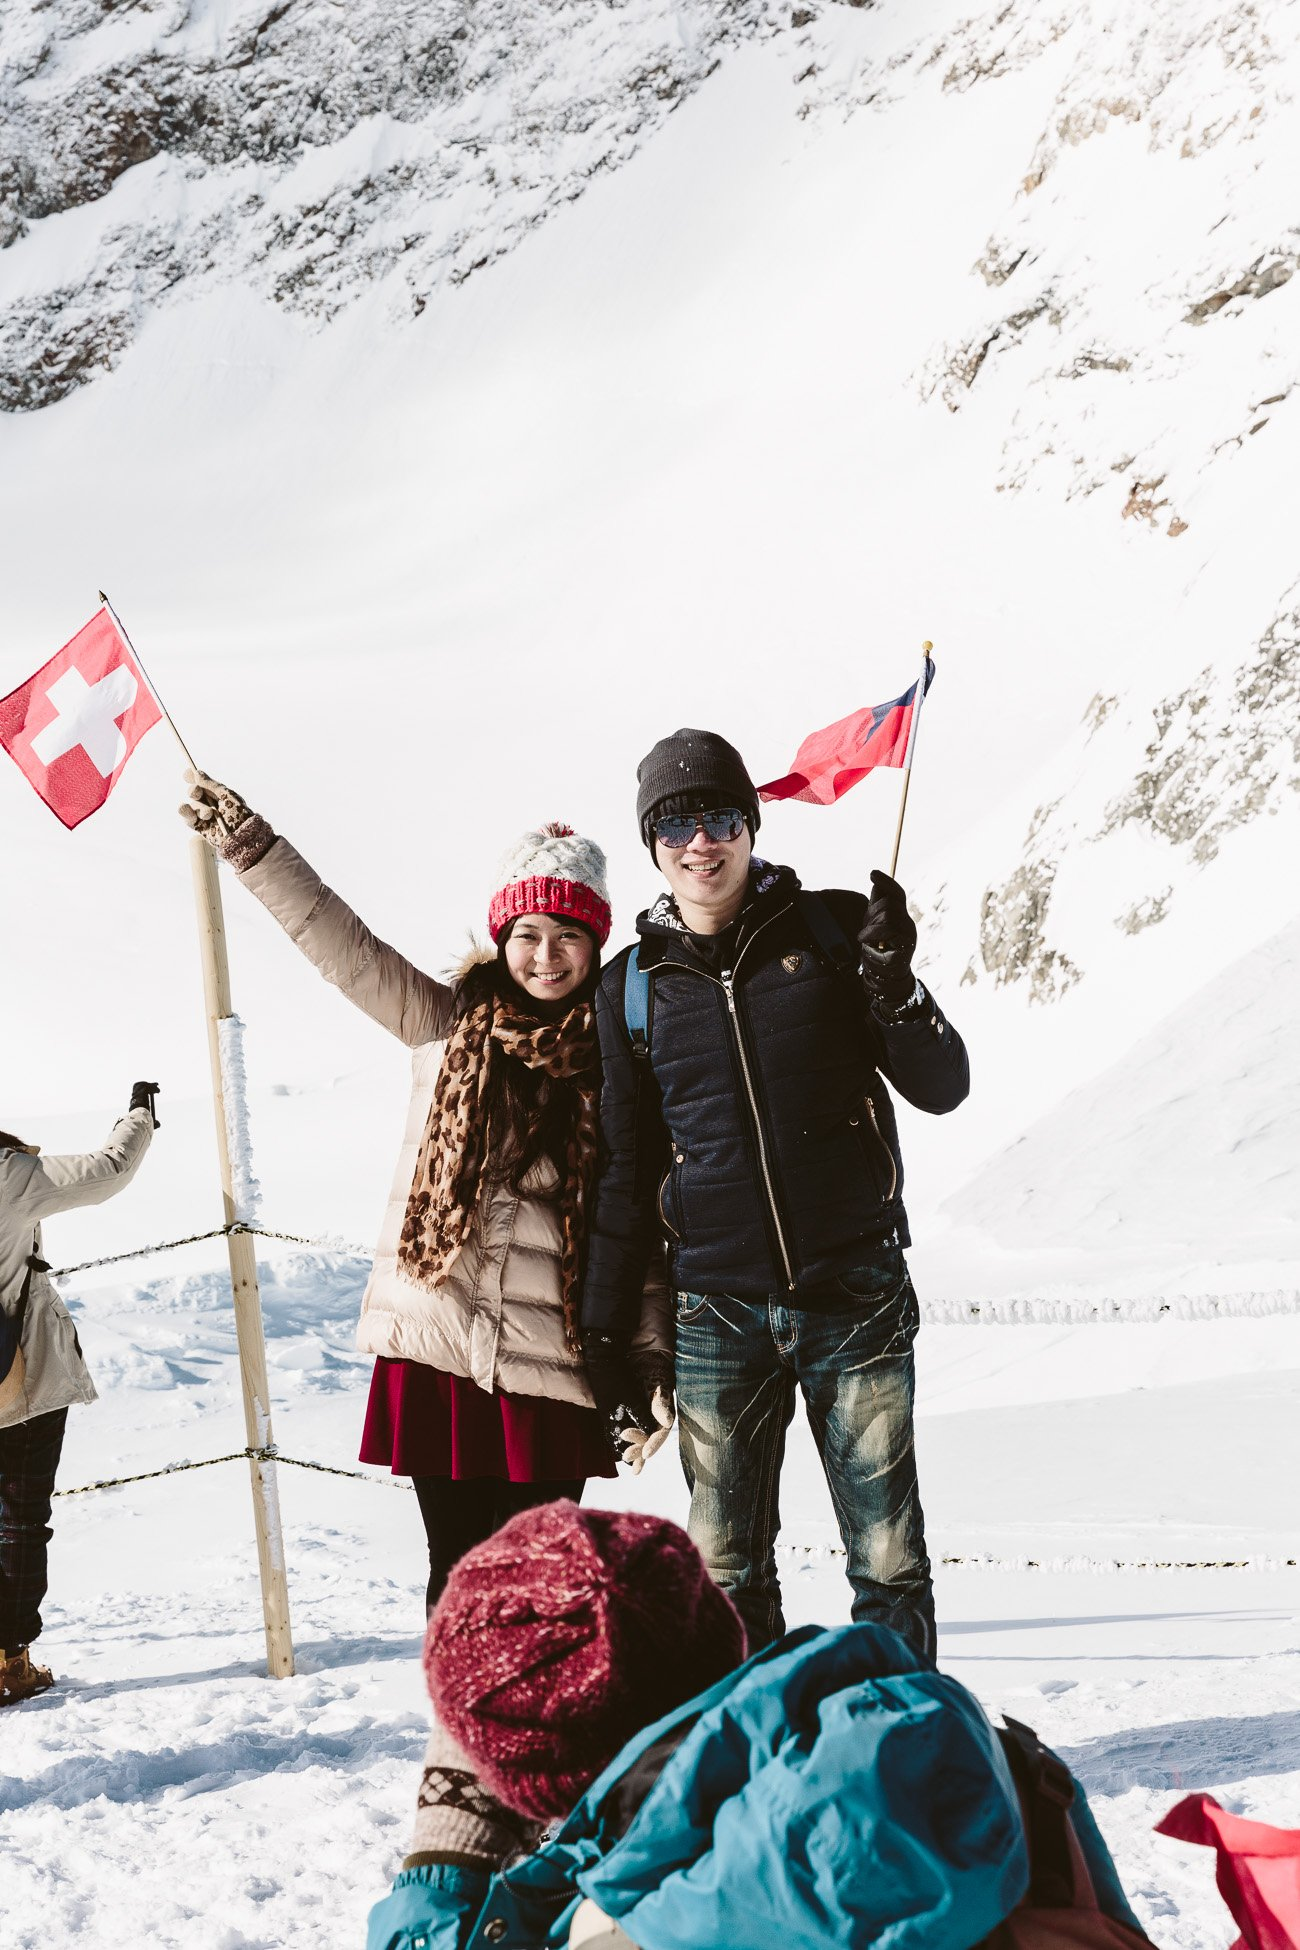 Asian tourists in the snow at Jungfraujoch